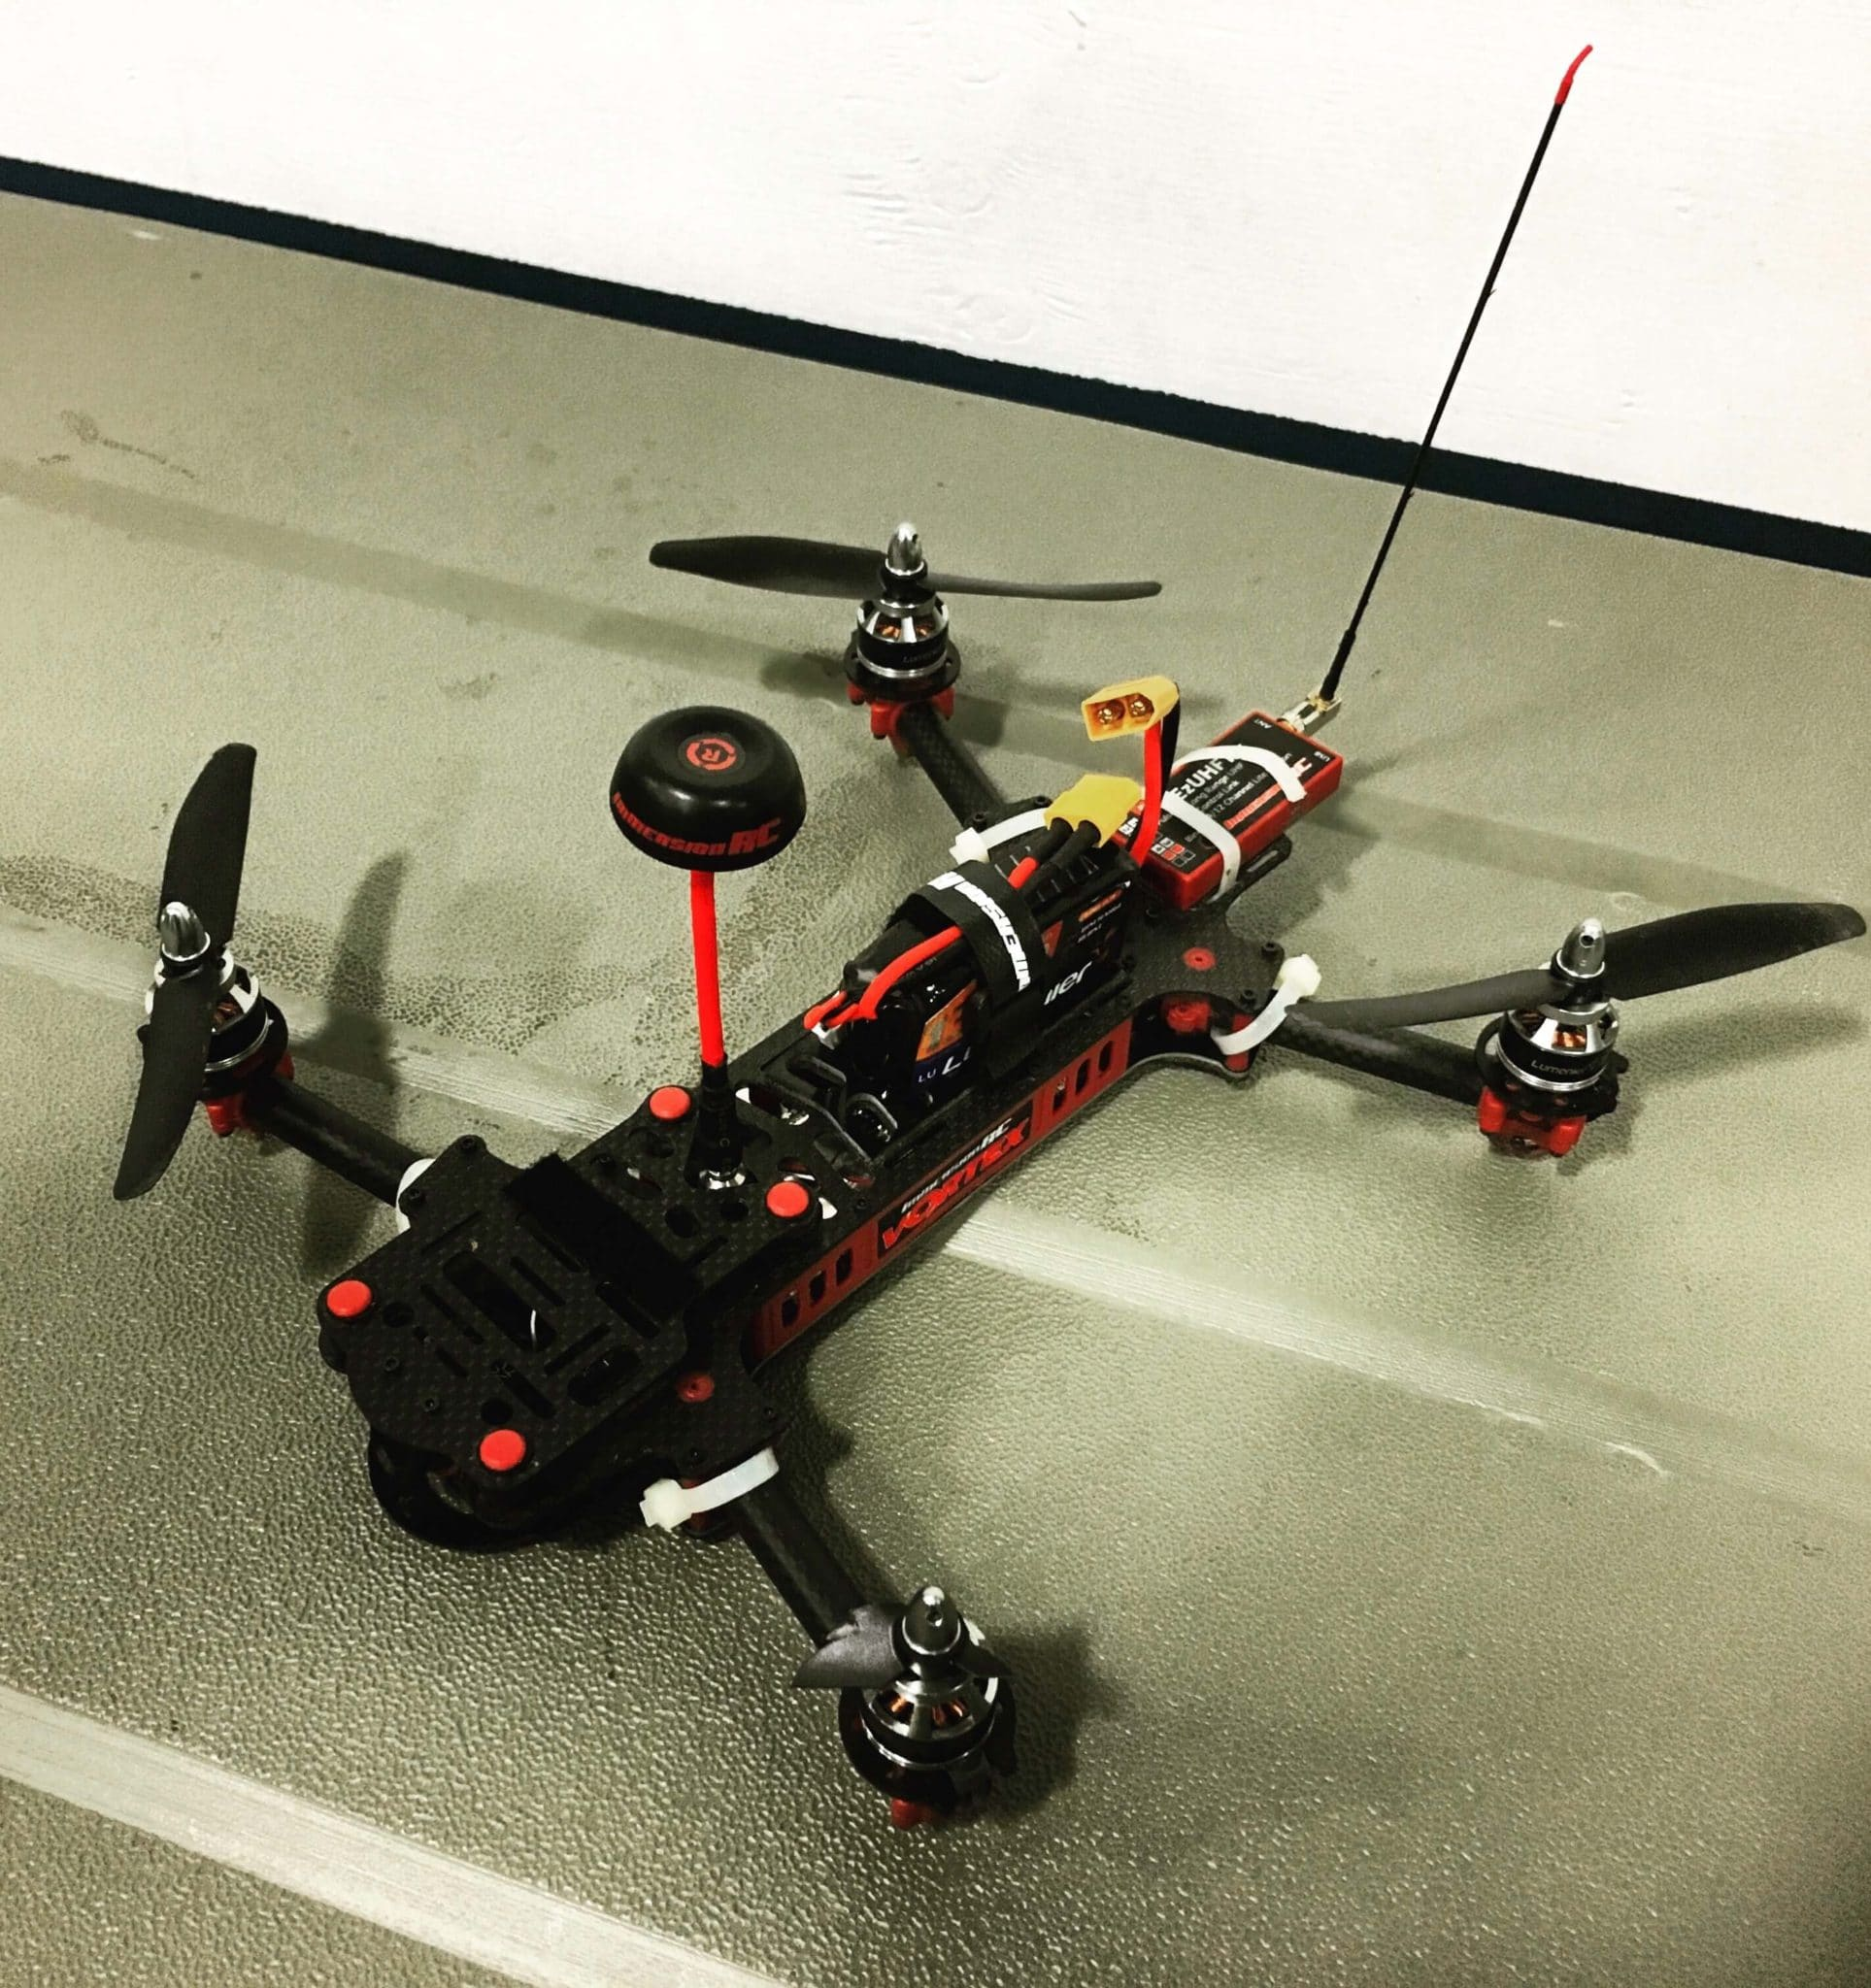 The Future of Sport: Drone Racing